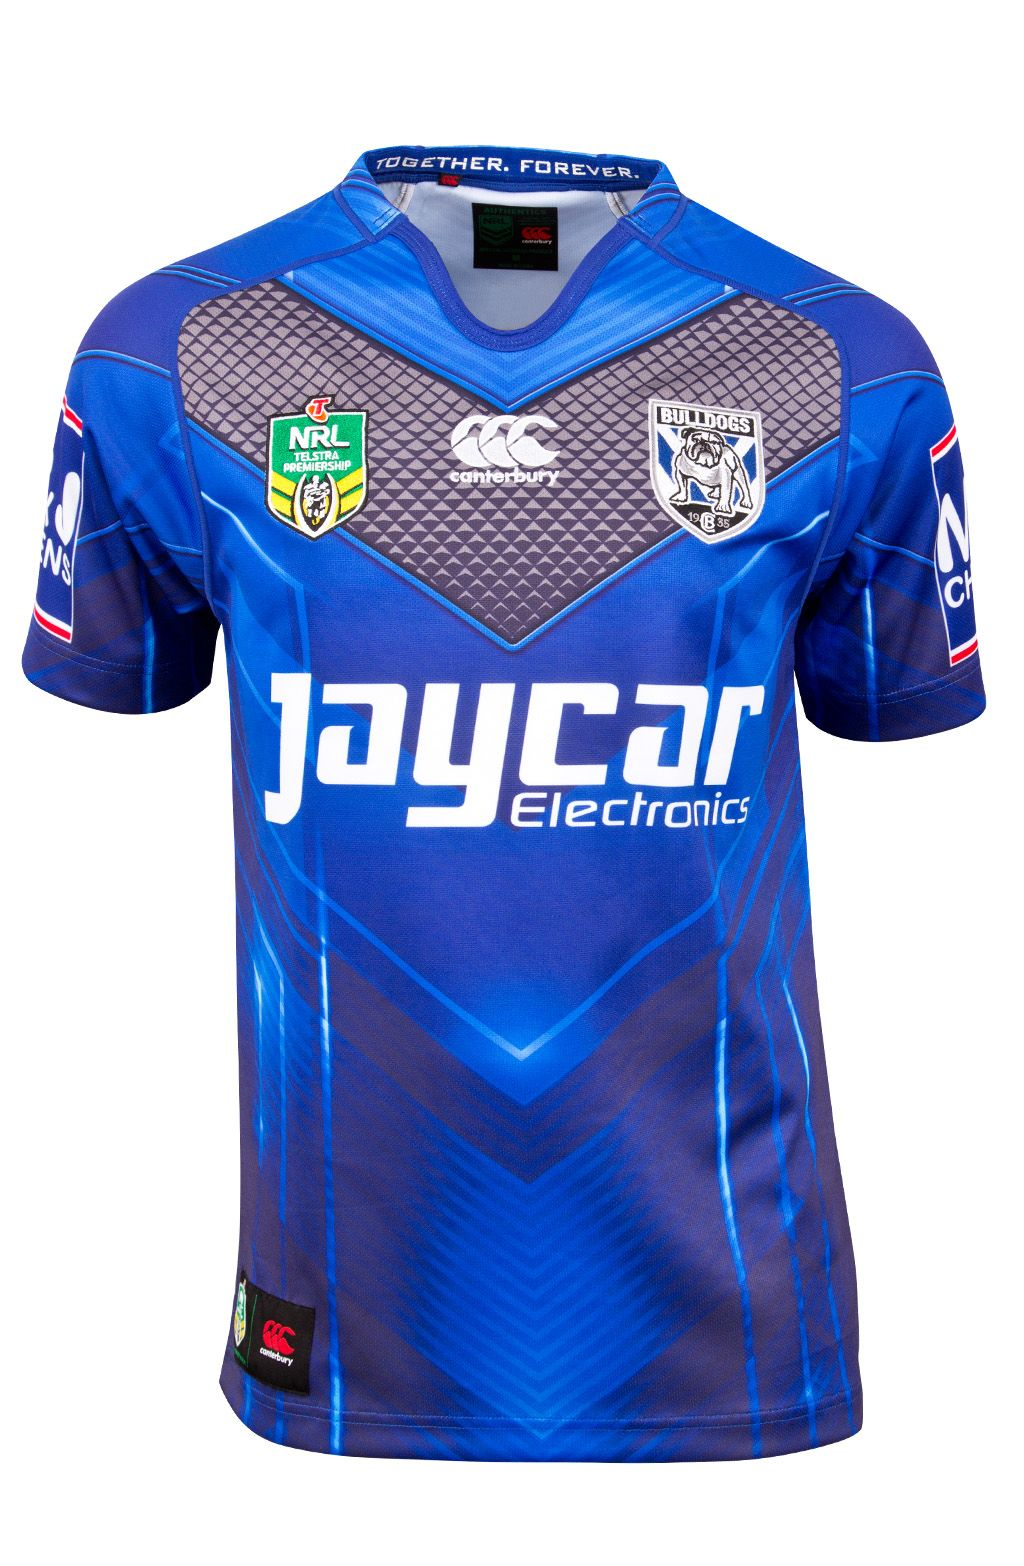 73669775fc7f6 Australia's Best Sports Lifestyle Clothing and Accessories - Canterbury NZ  - Shop - Supporters - Bulldogs Alternate Jersey